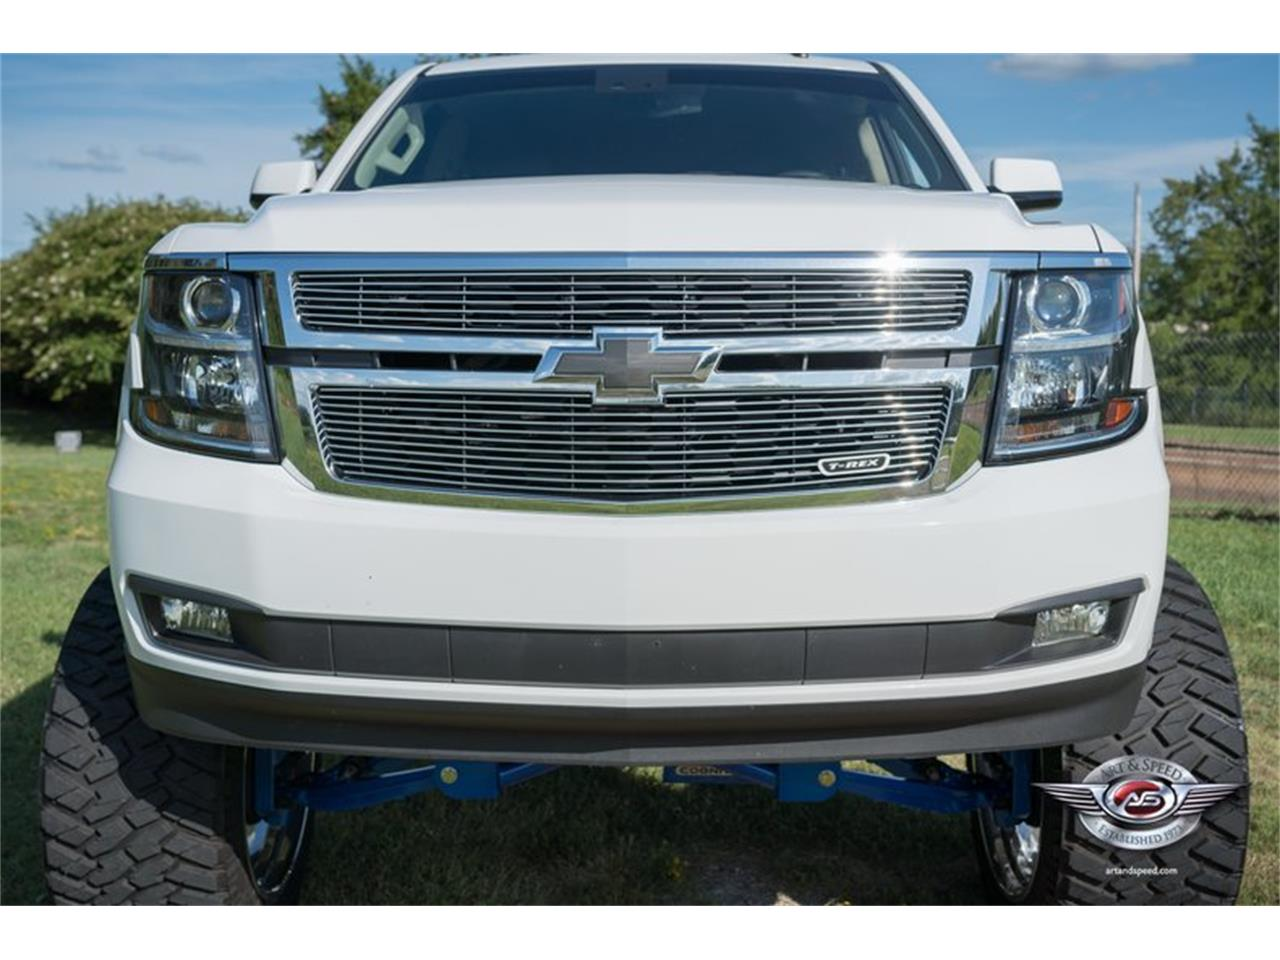 2015 Chevrolet Suburban for sale in Collierville, TN – photo 28